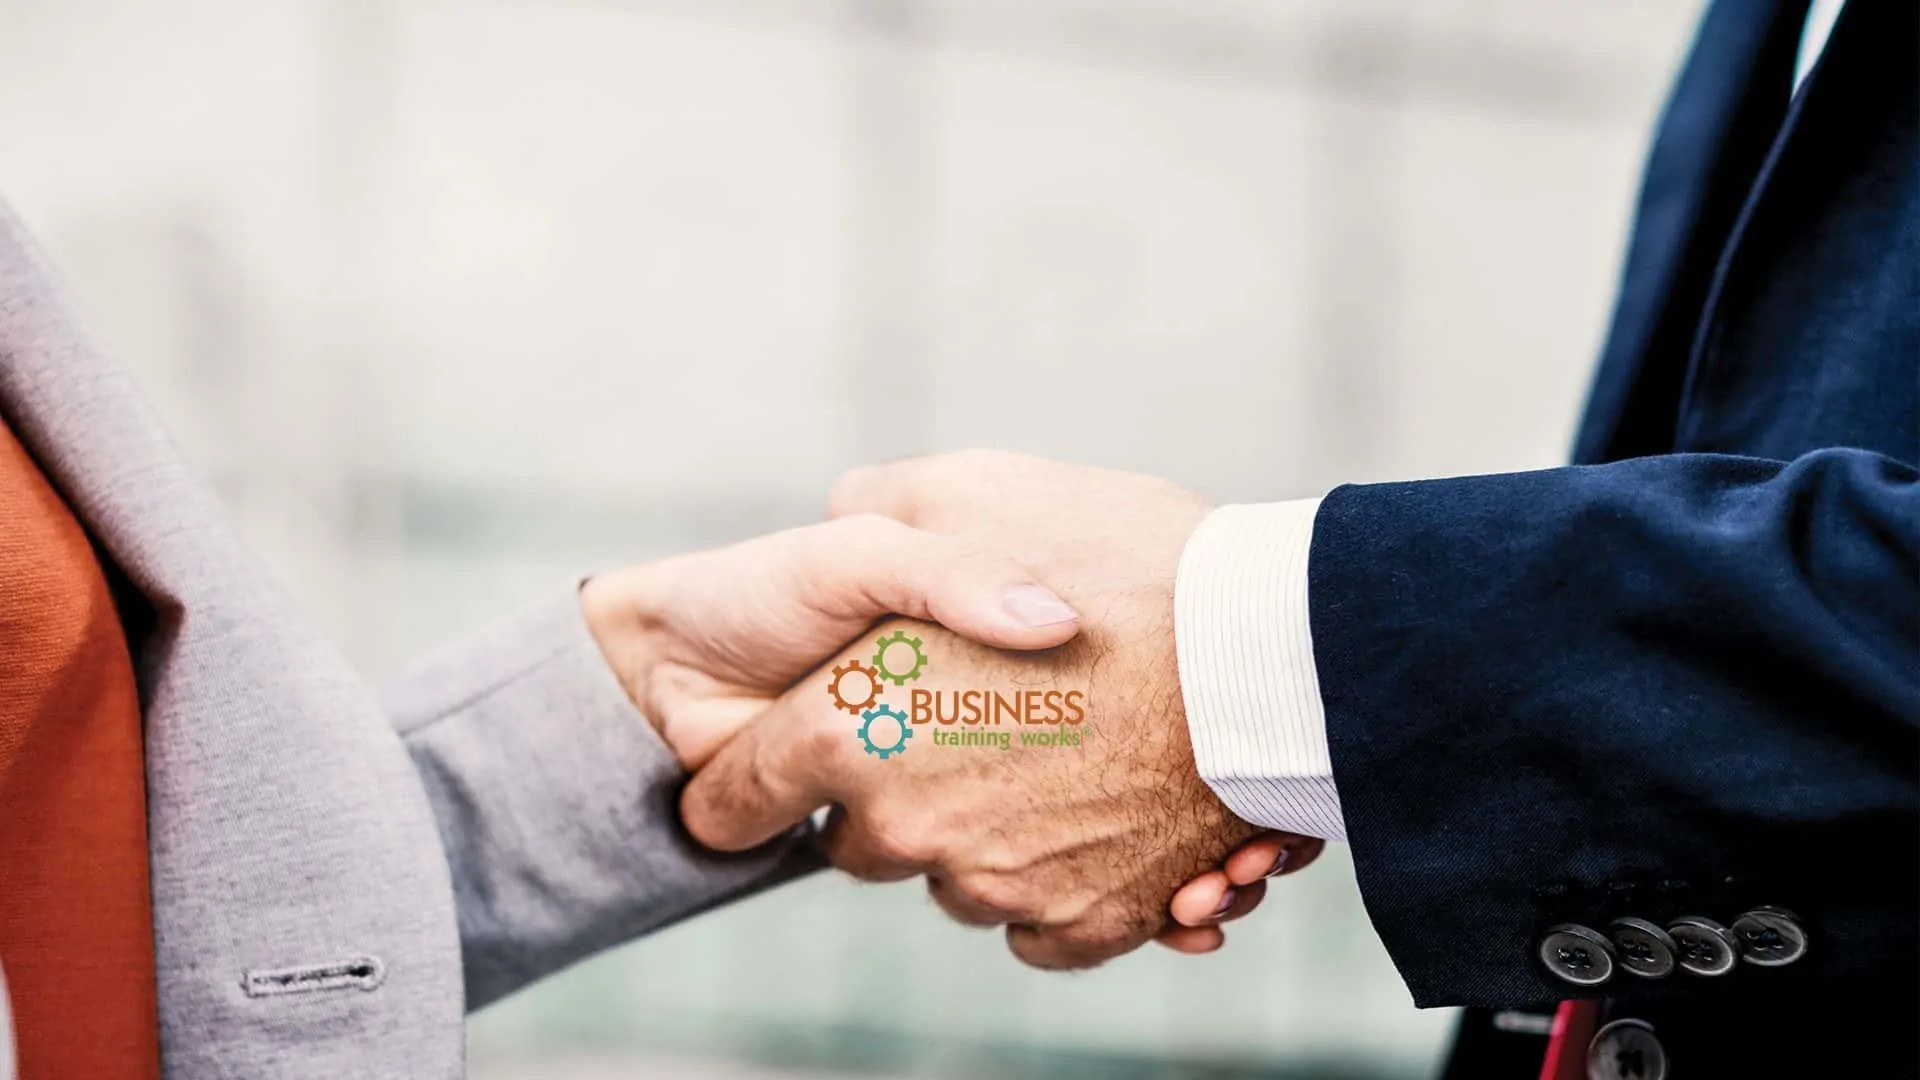 Business Networking Training